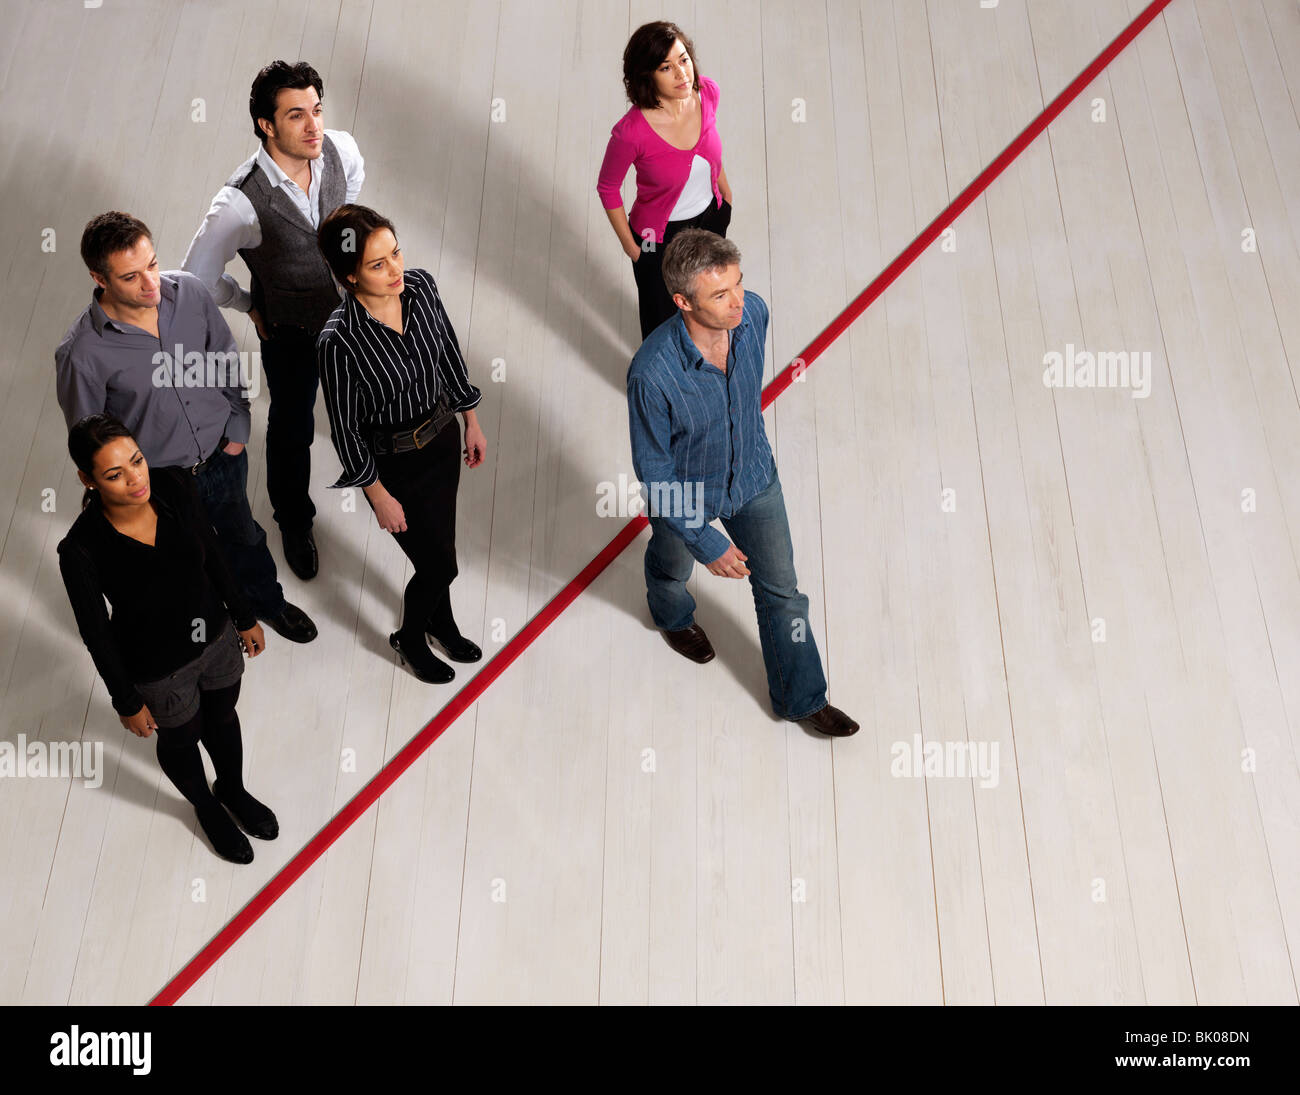 Business men and women crossing red line - Stock Image